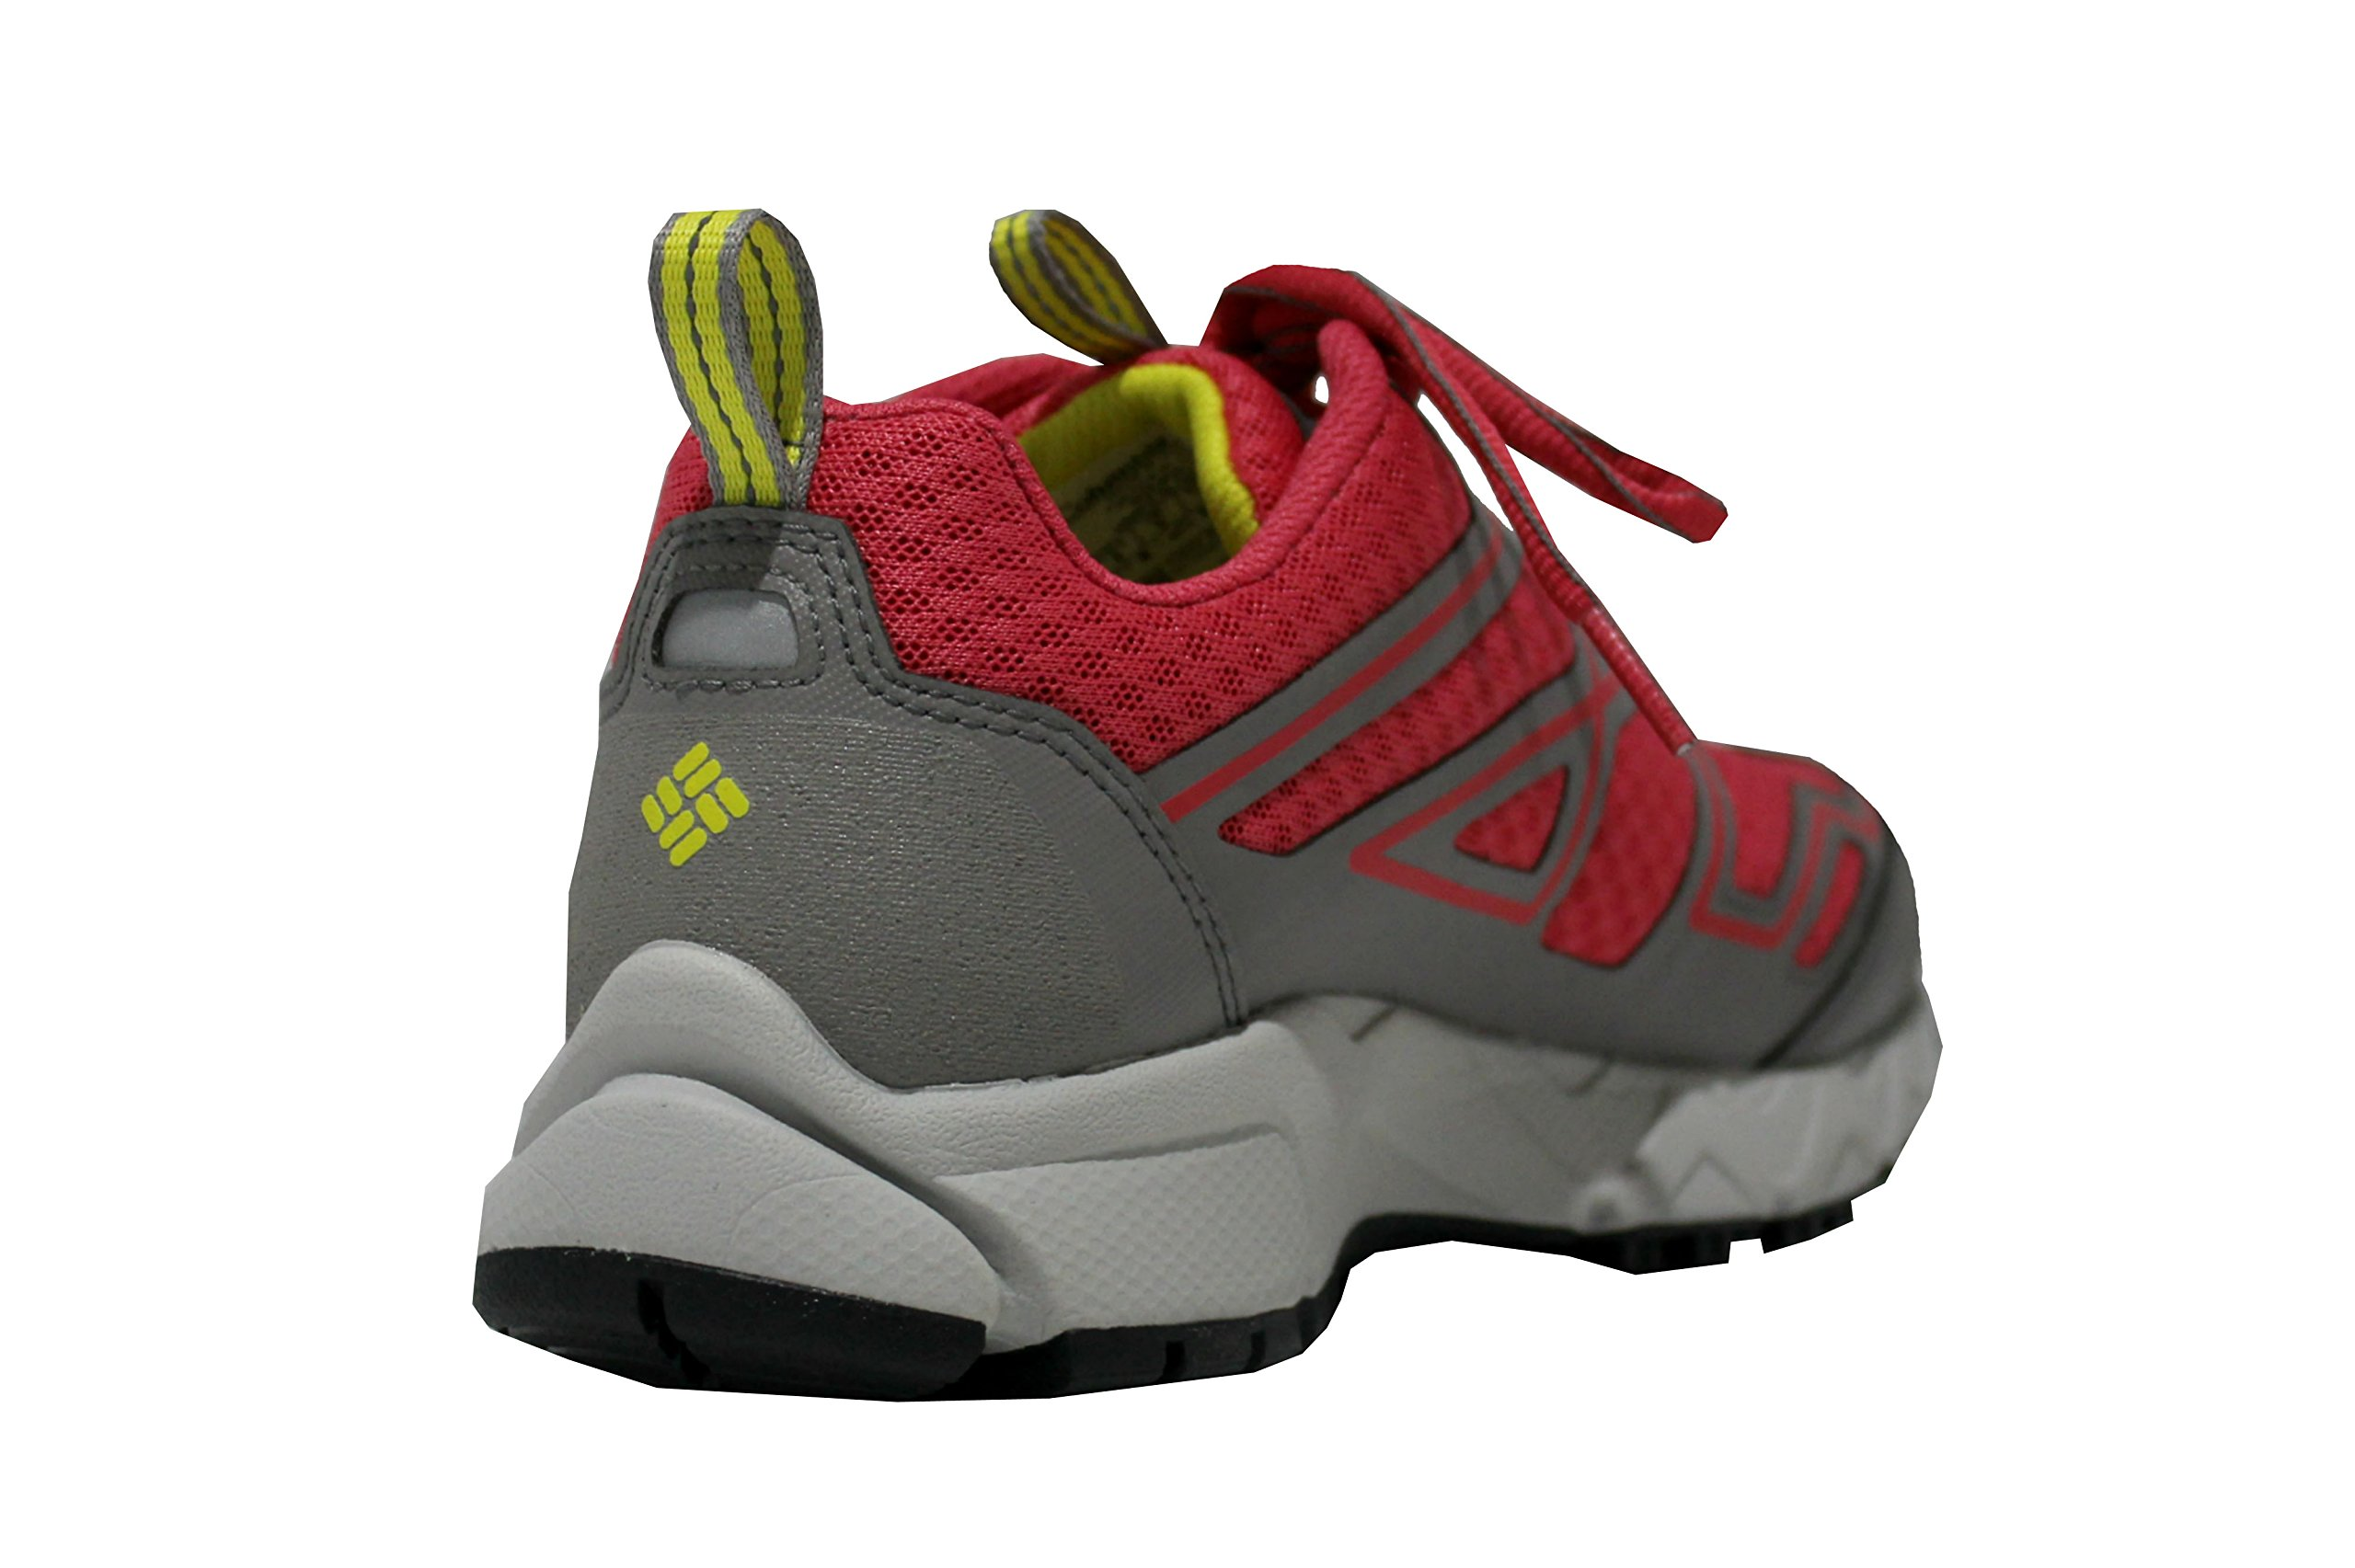 Columbia Women's Vigorous Omni Tech Waterproof Sneakers Shoes (7) by Columbia (Image #2)